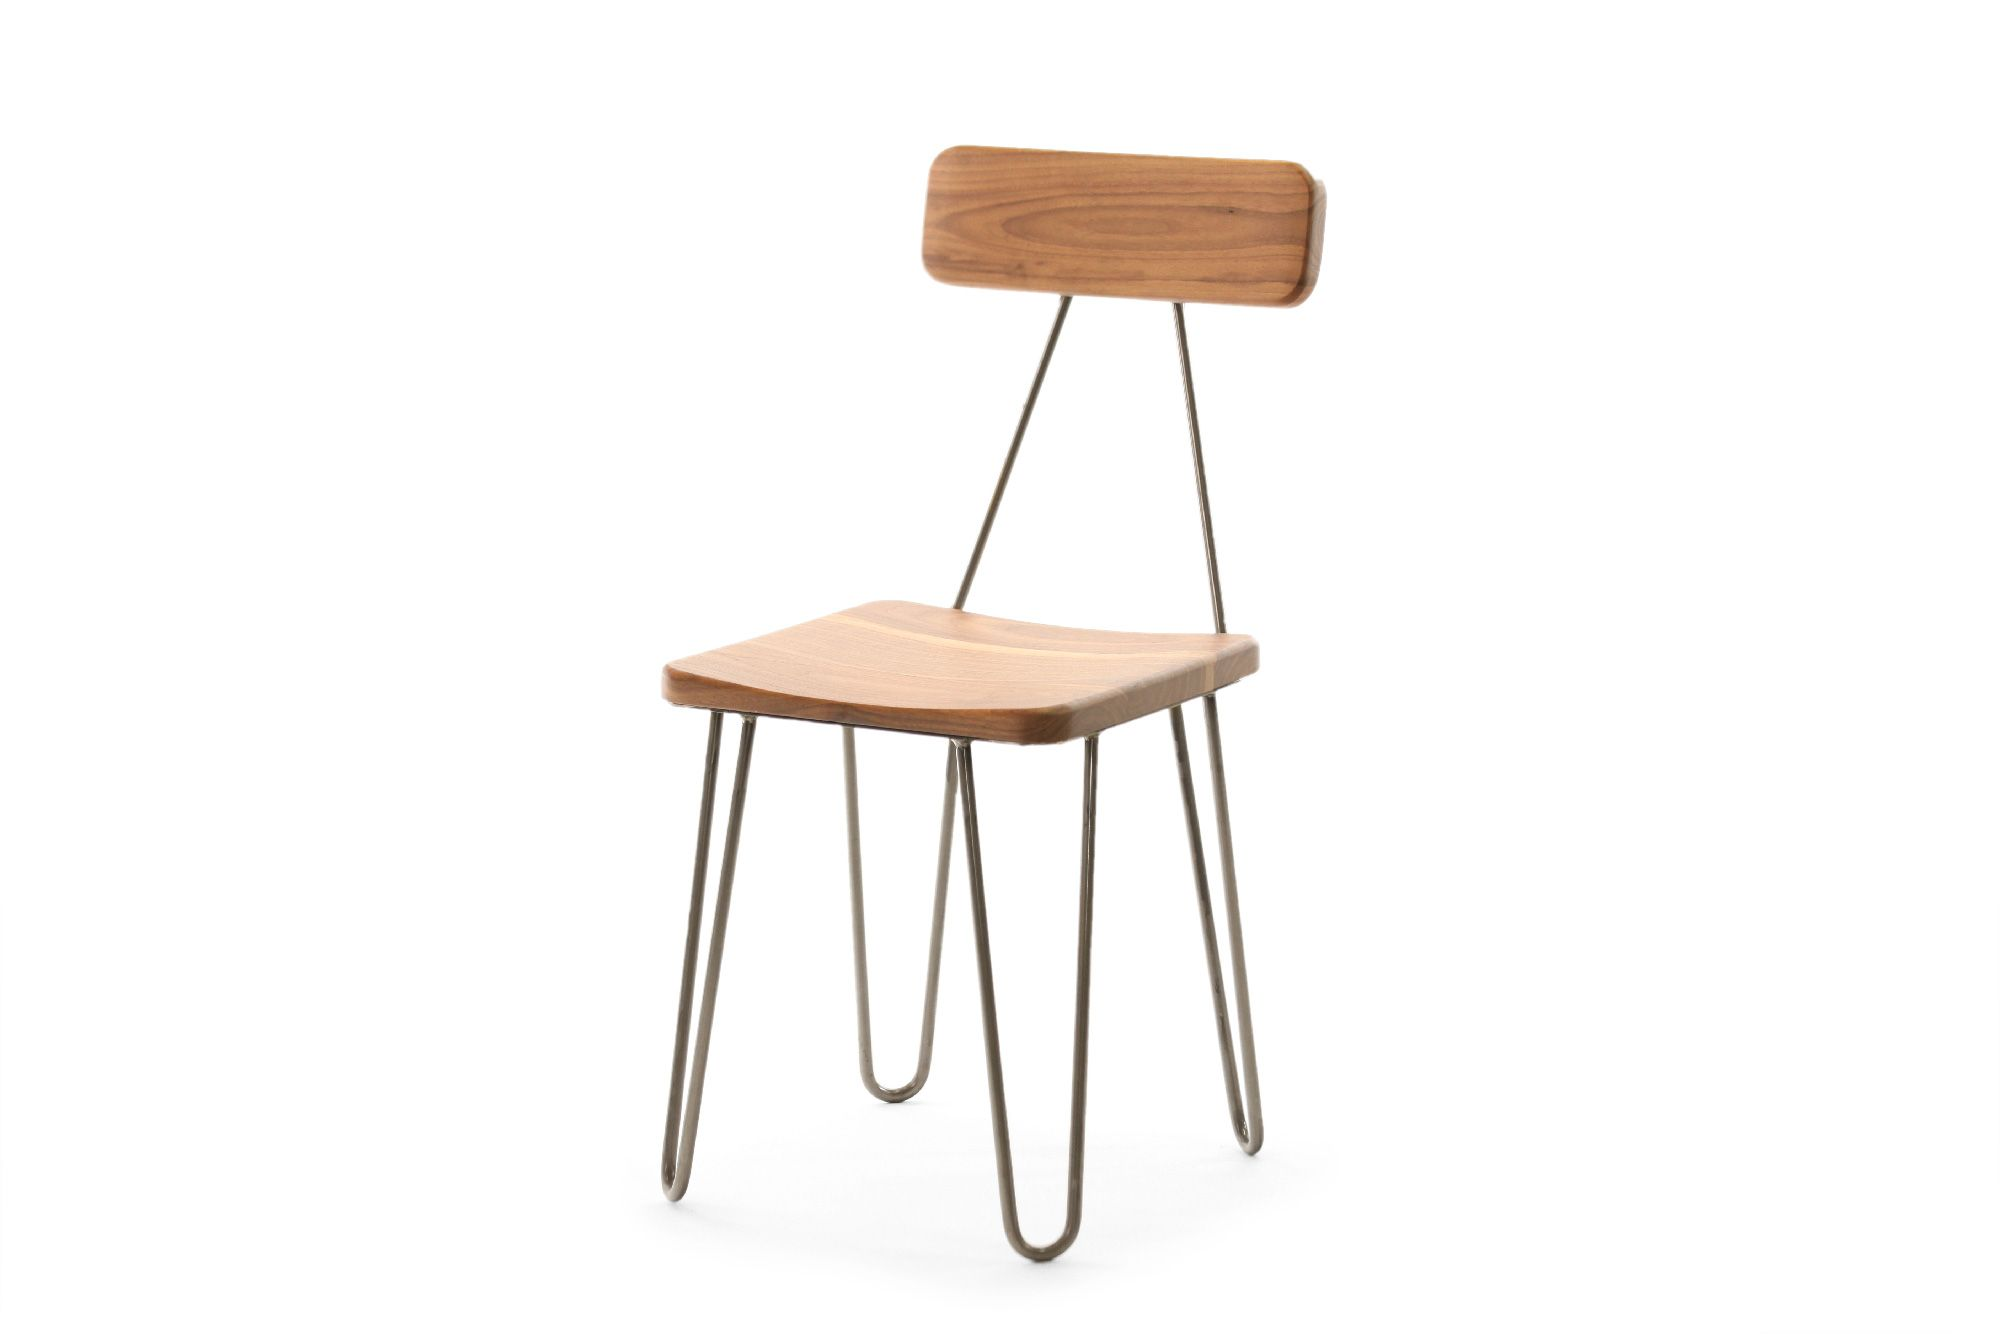 Furniture Legs Hairpin hairpin legs for less offers a variety of sturdy yet modern chair